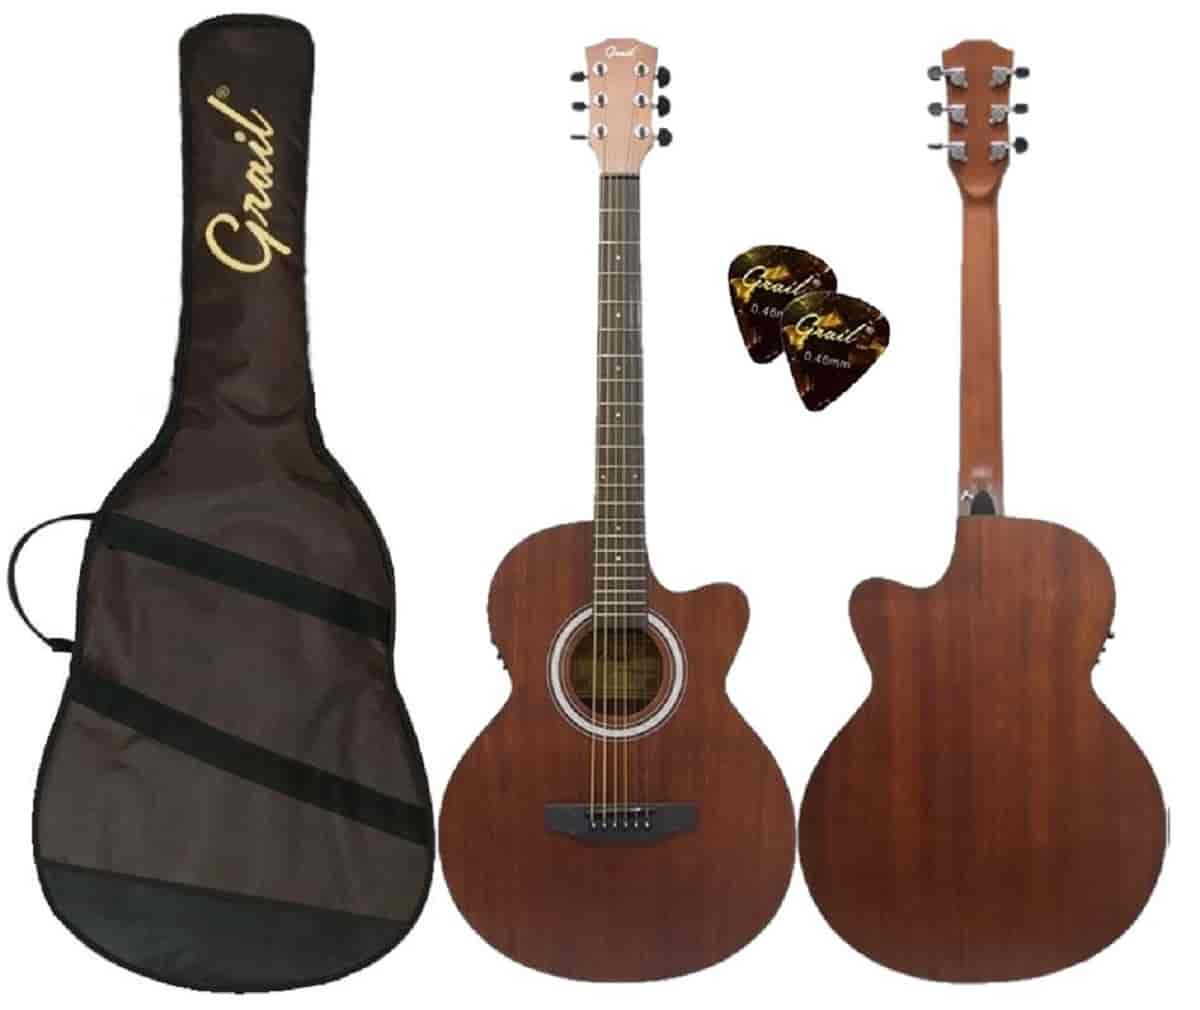 Grail Allure A190CE SAS Semi Acoustic Guitar Cutaway All Sapele (FREE High Quality Padded Bag & 2 Picks)